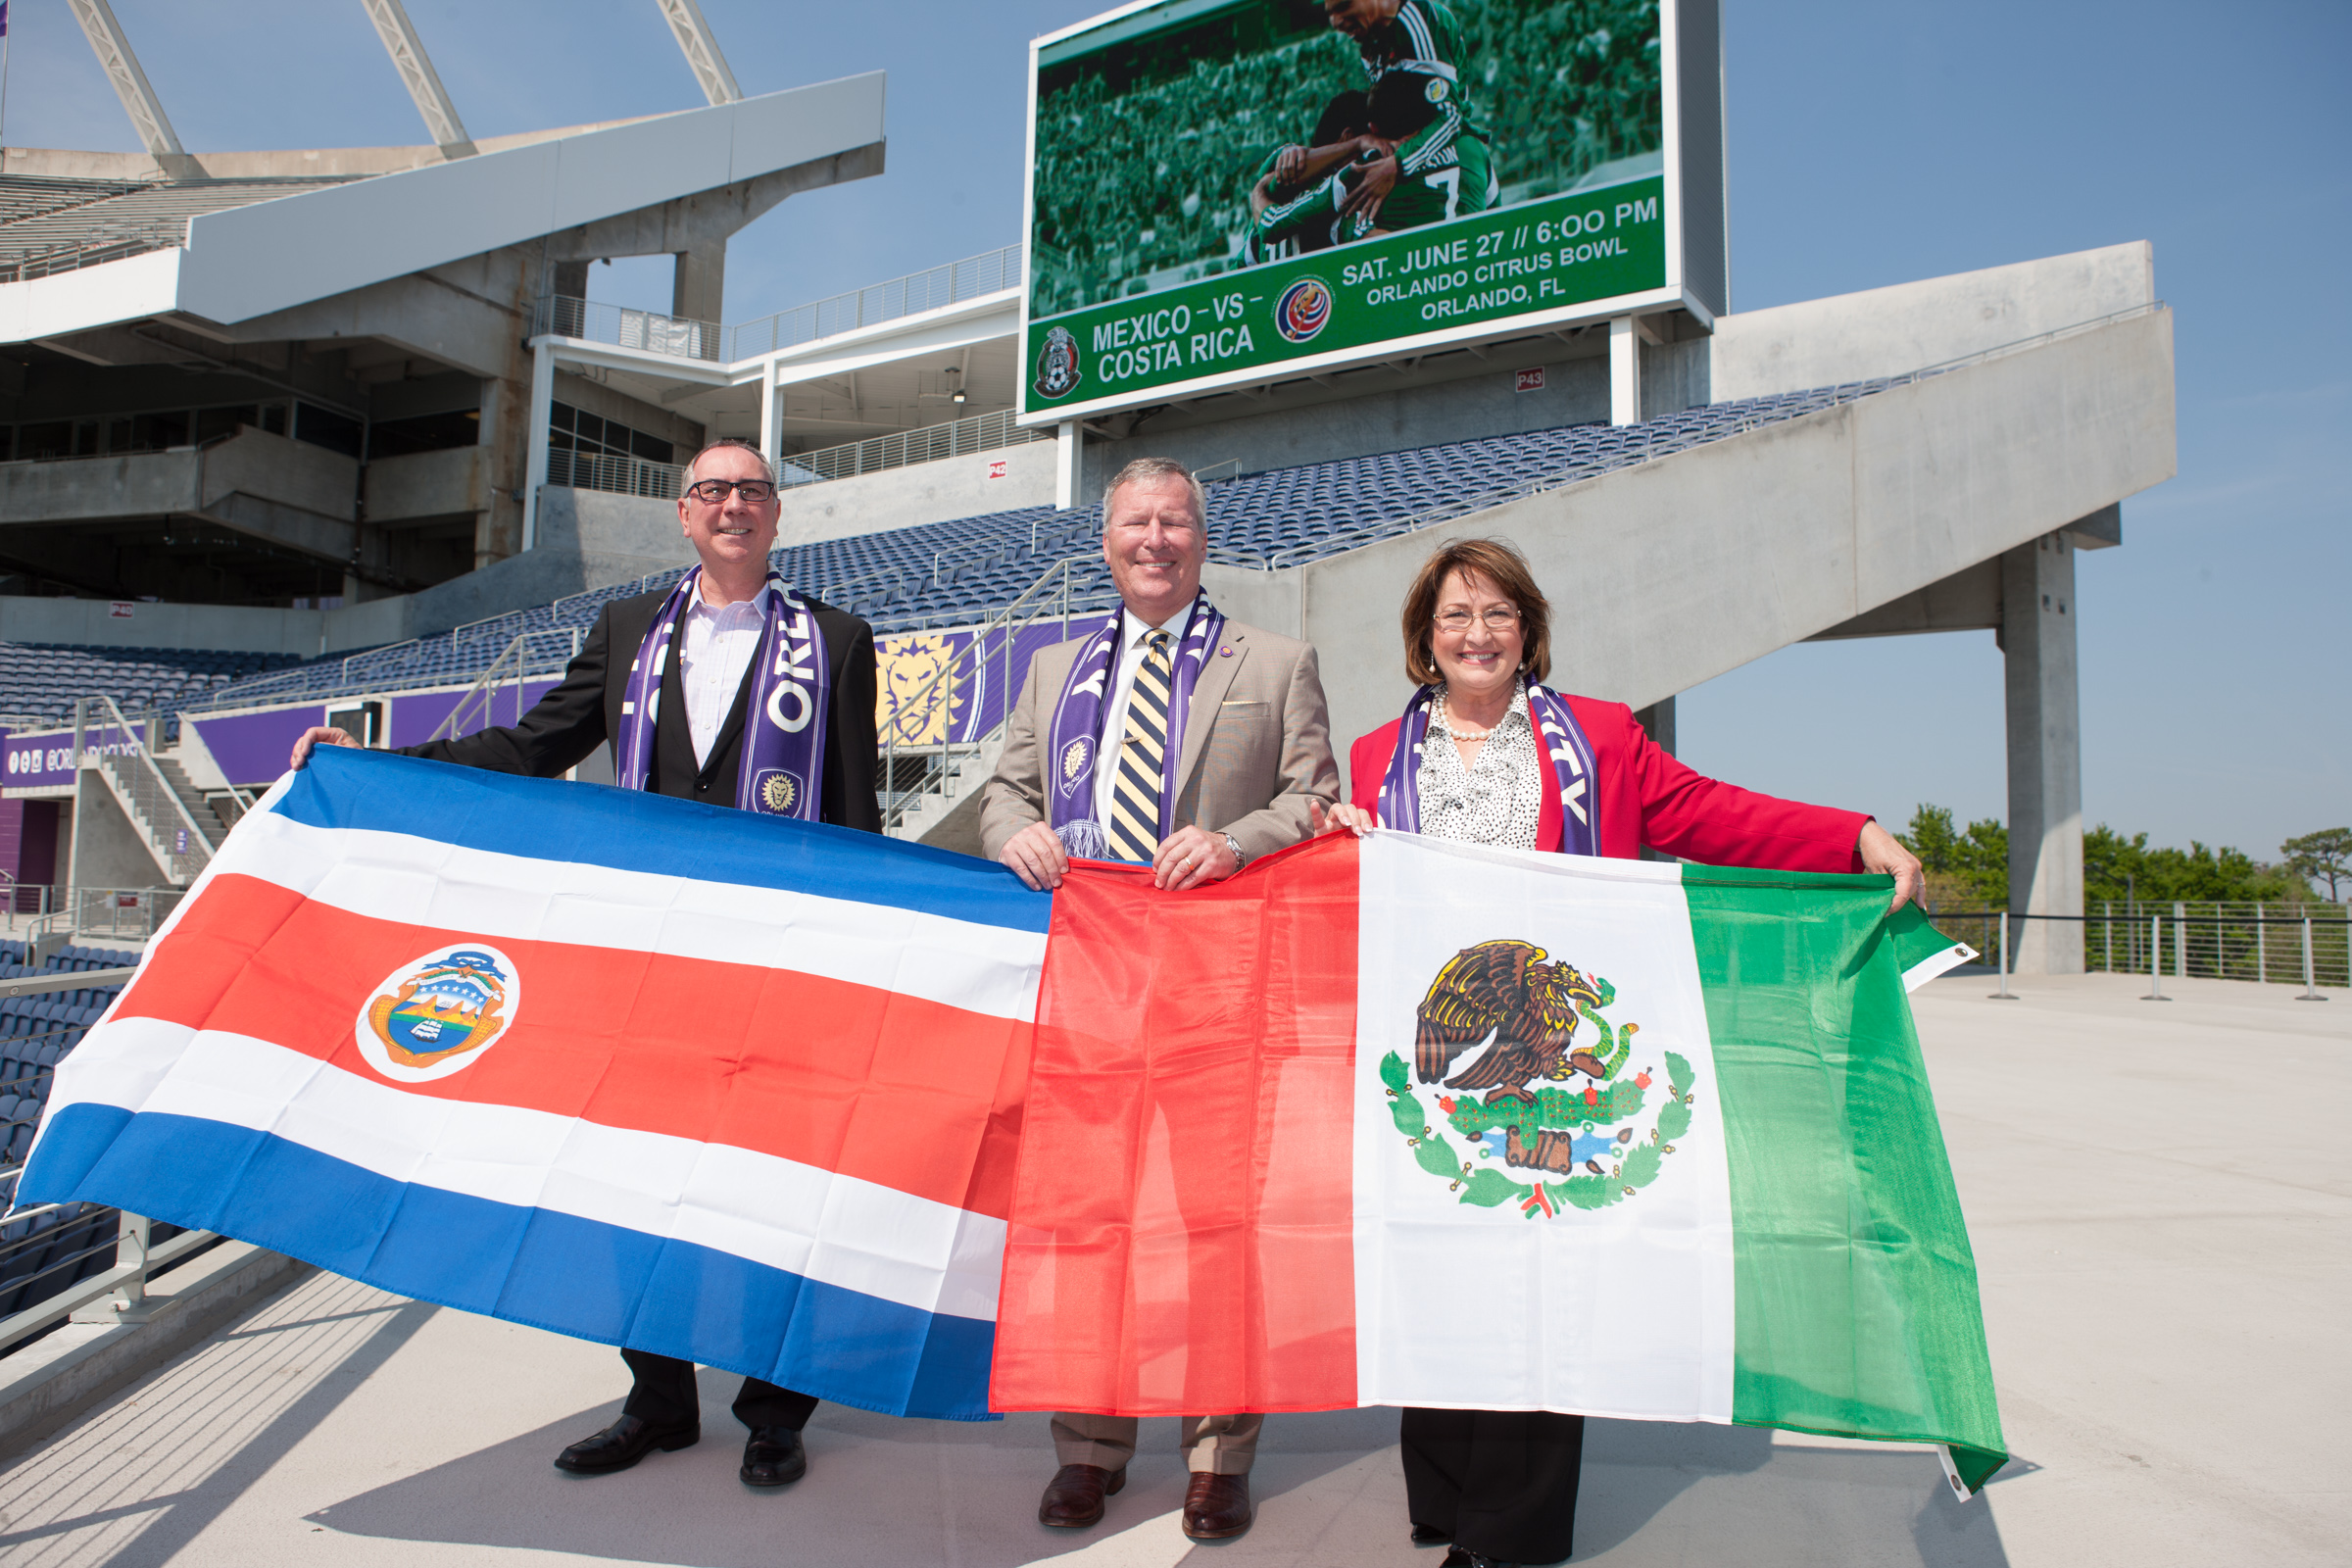 3-19-2015 Orange County to Host Friendly Futbol Fiesta Photo